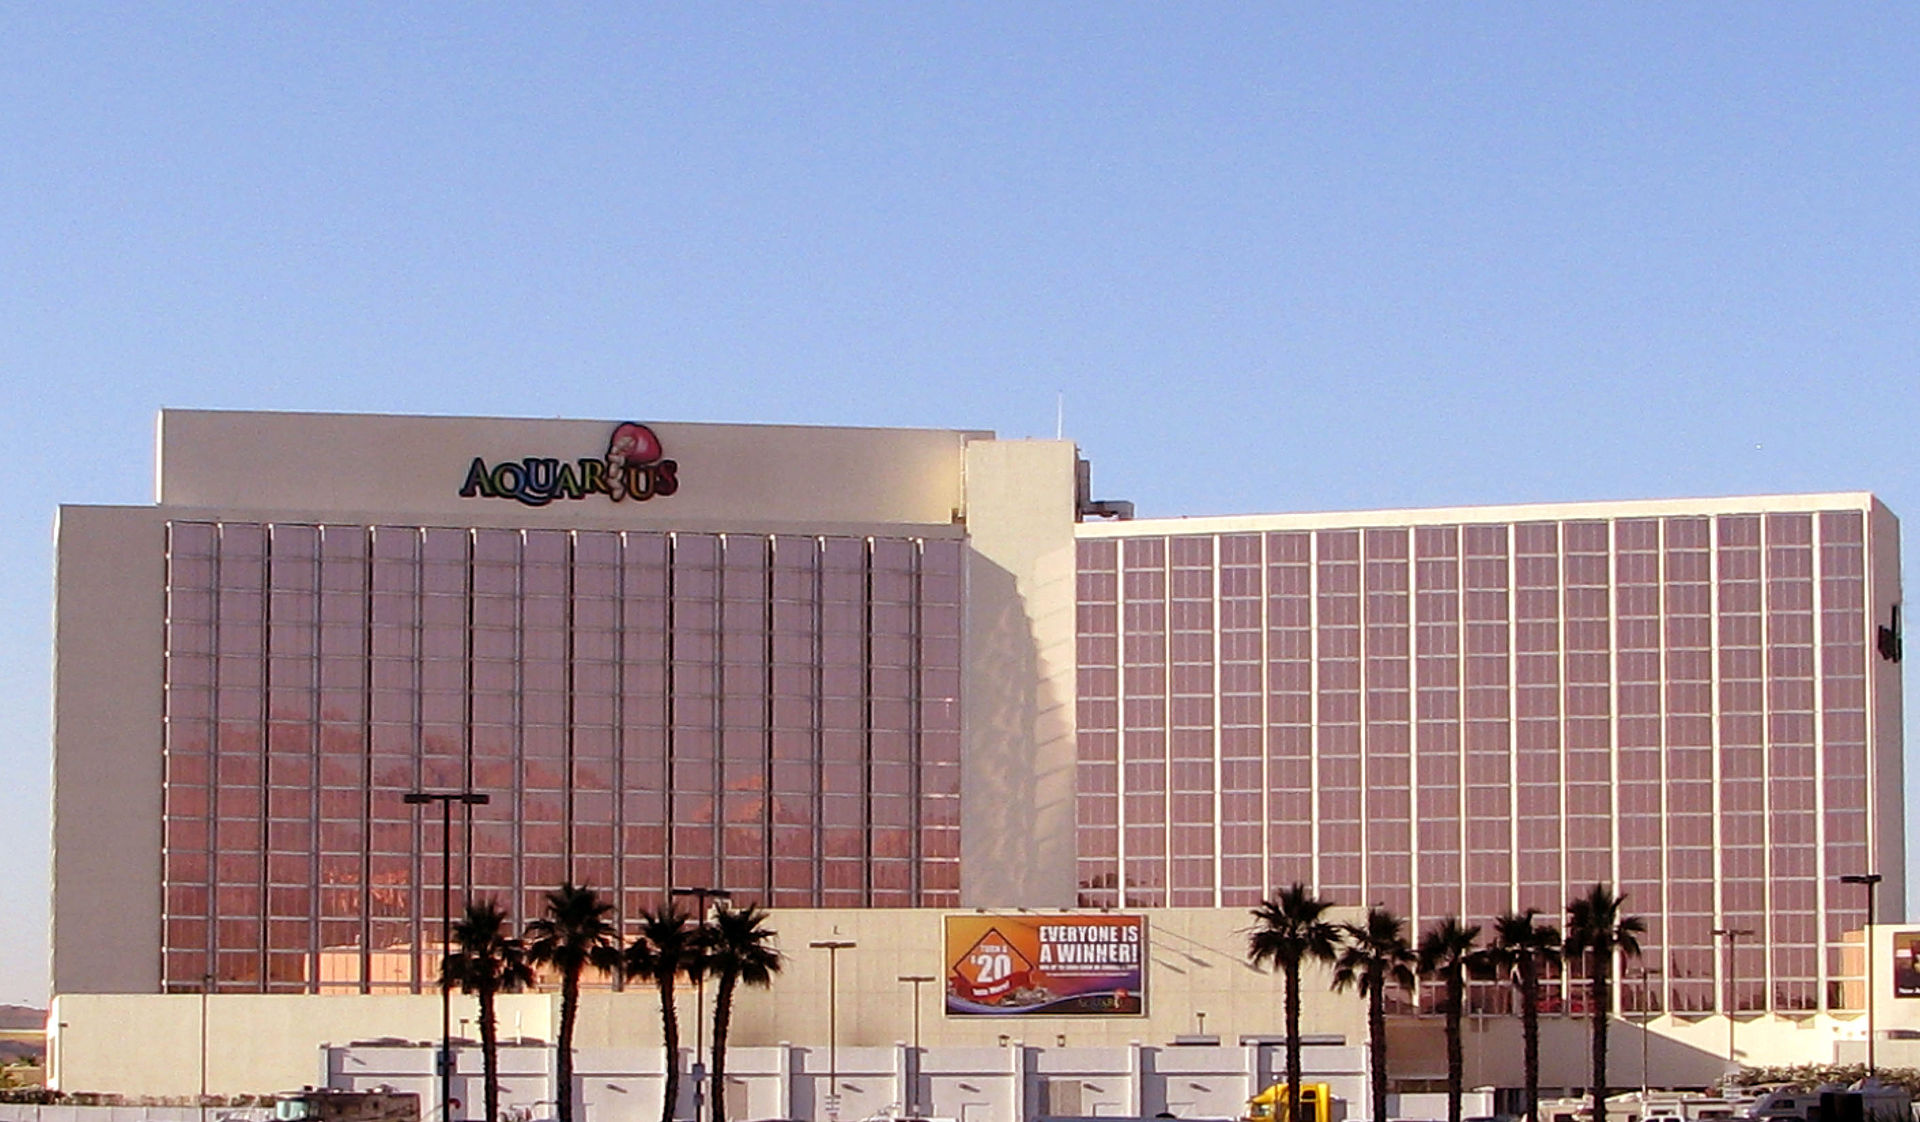 laughlin aquarius casino resort